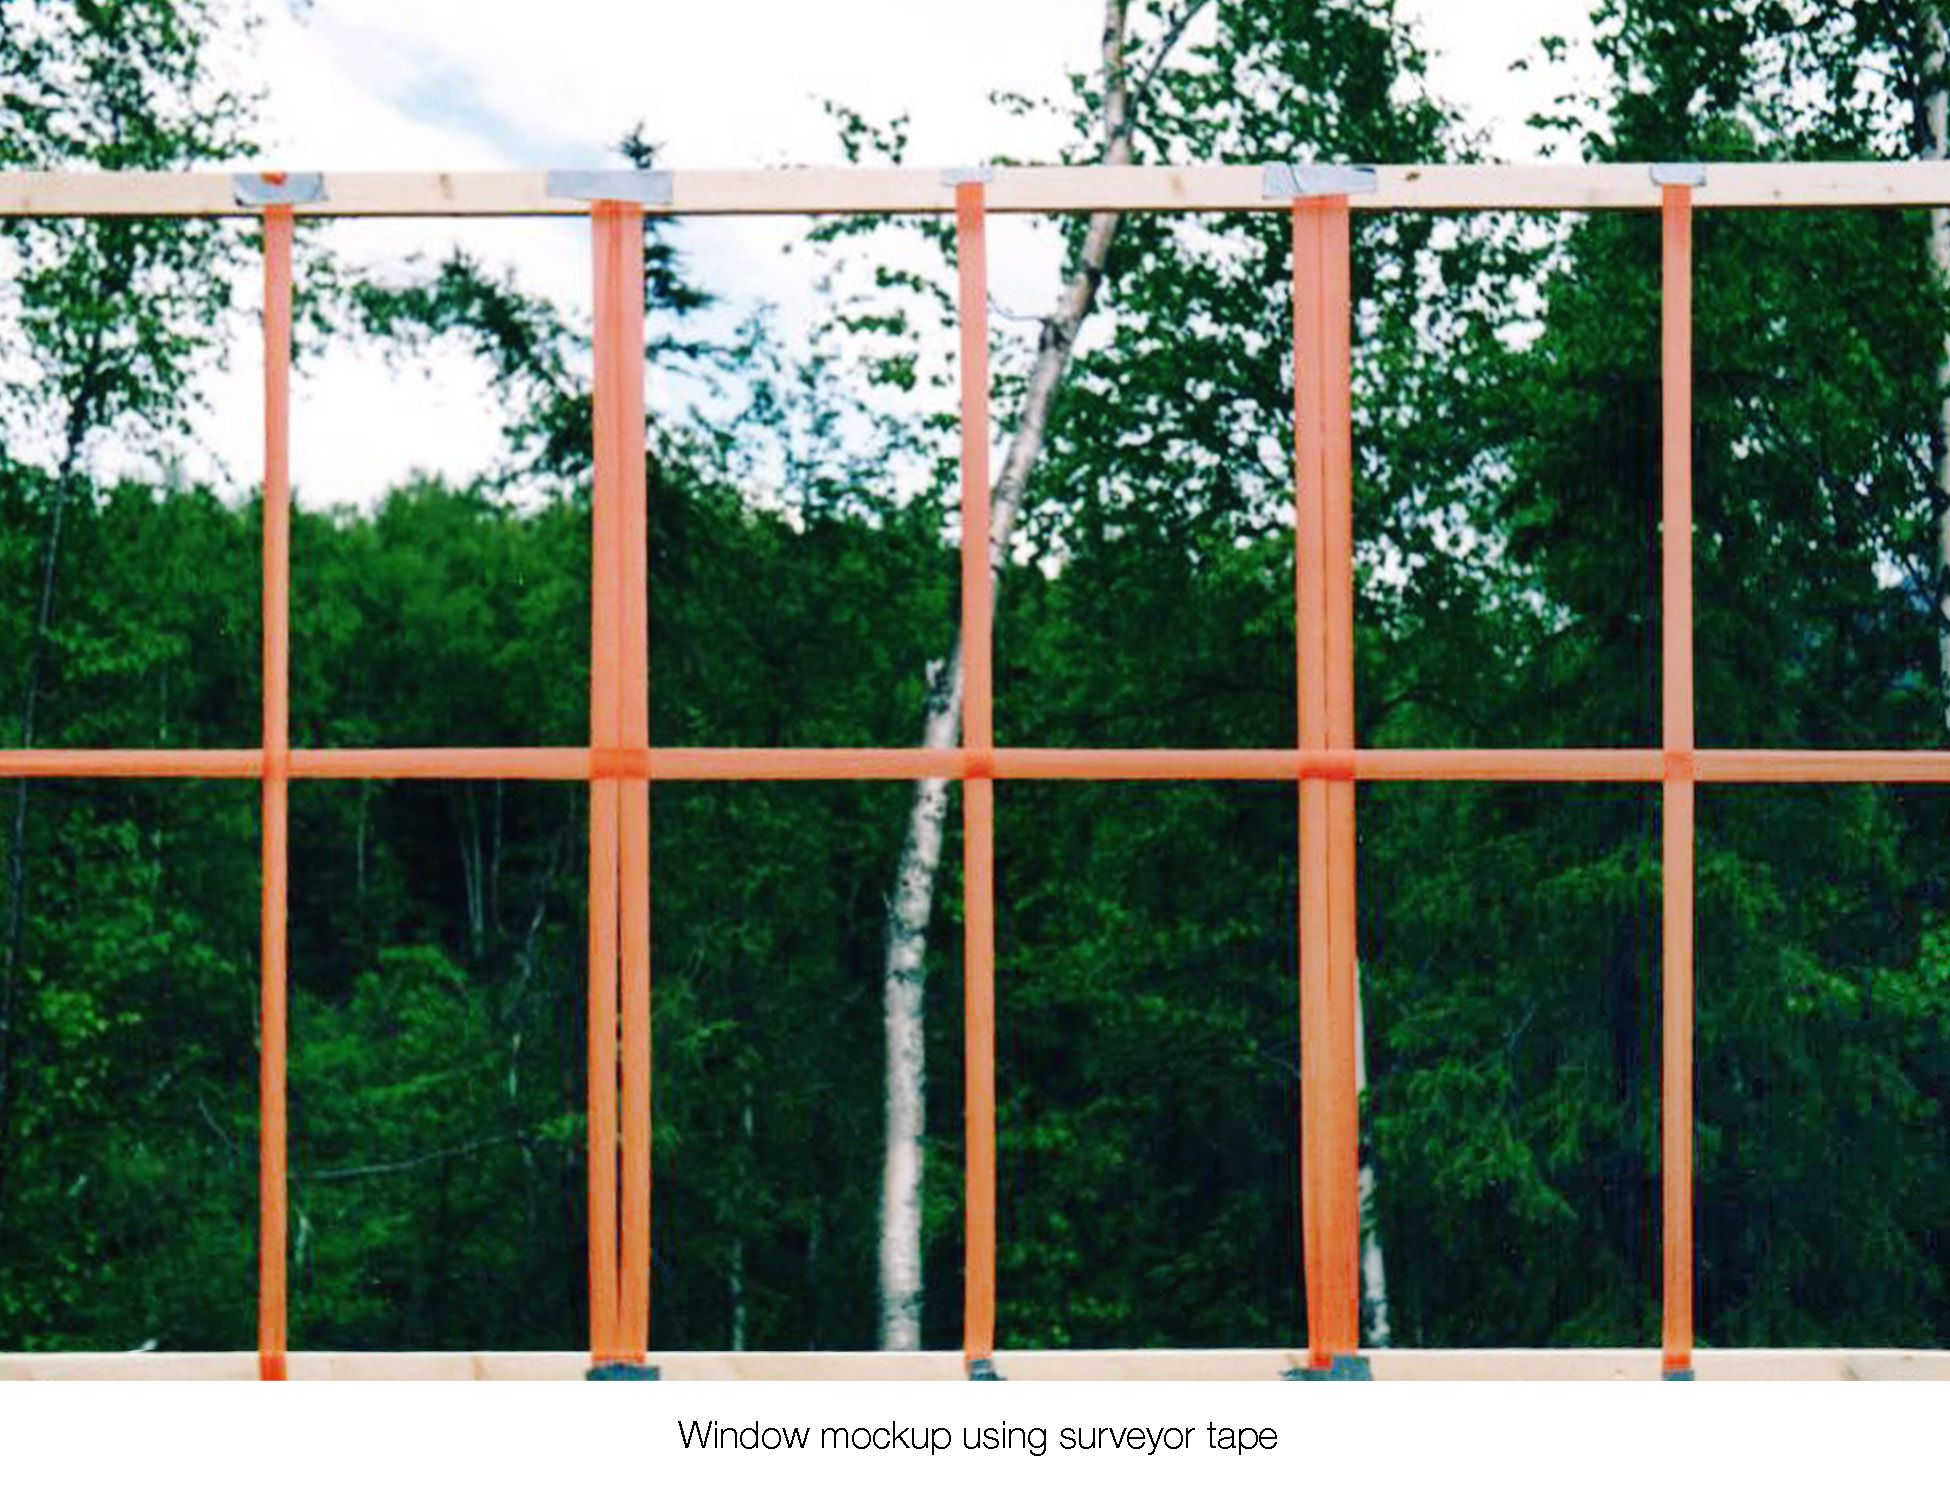 House on the meadow kitchen on site window design mock-up using surveyor tape and cardboard